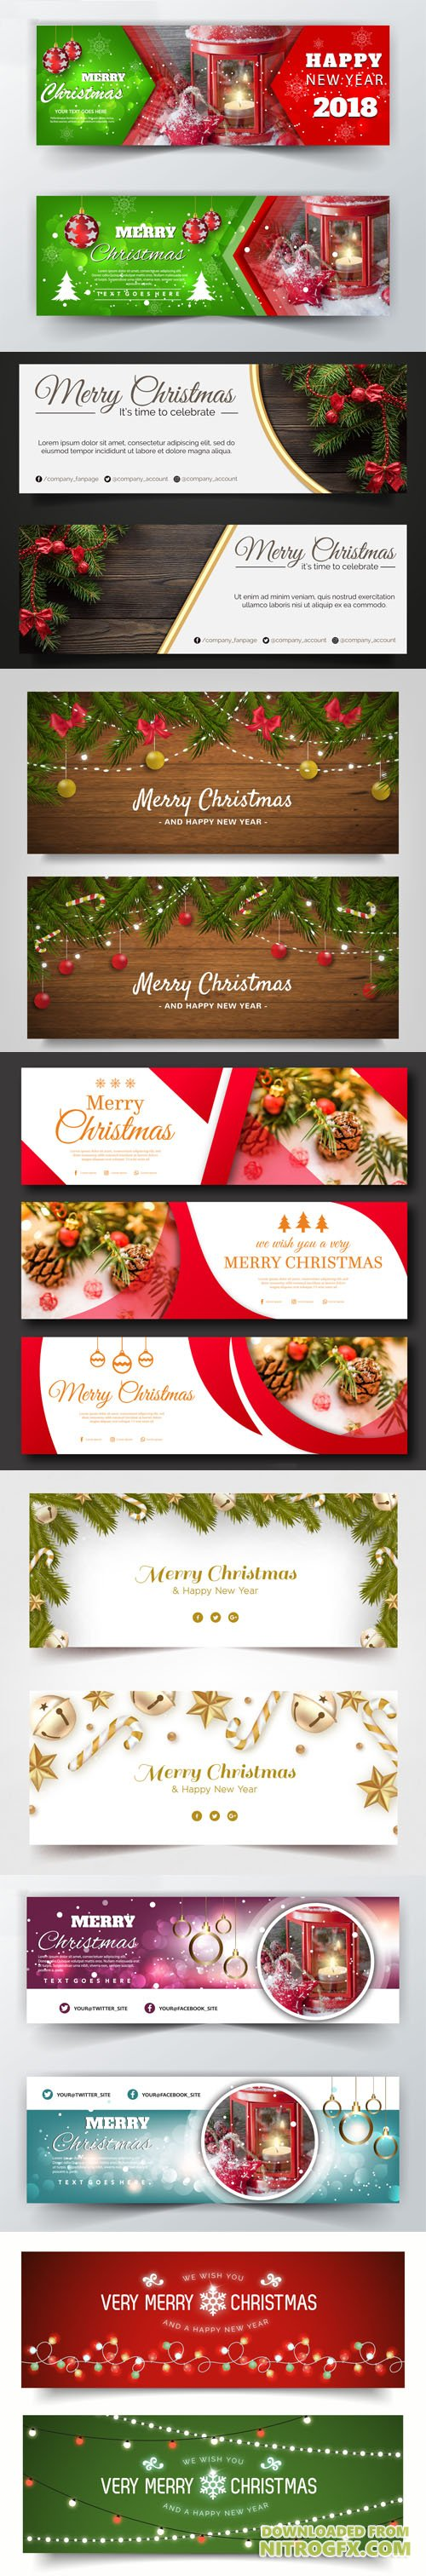 7 Merry Christmas Holiday Banners Collection in Vector